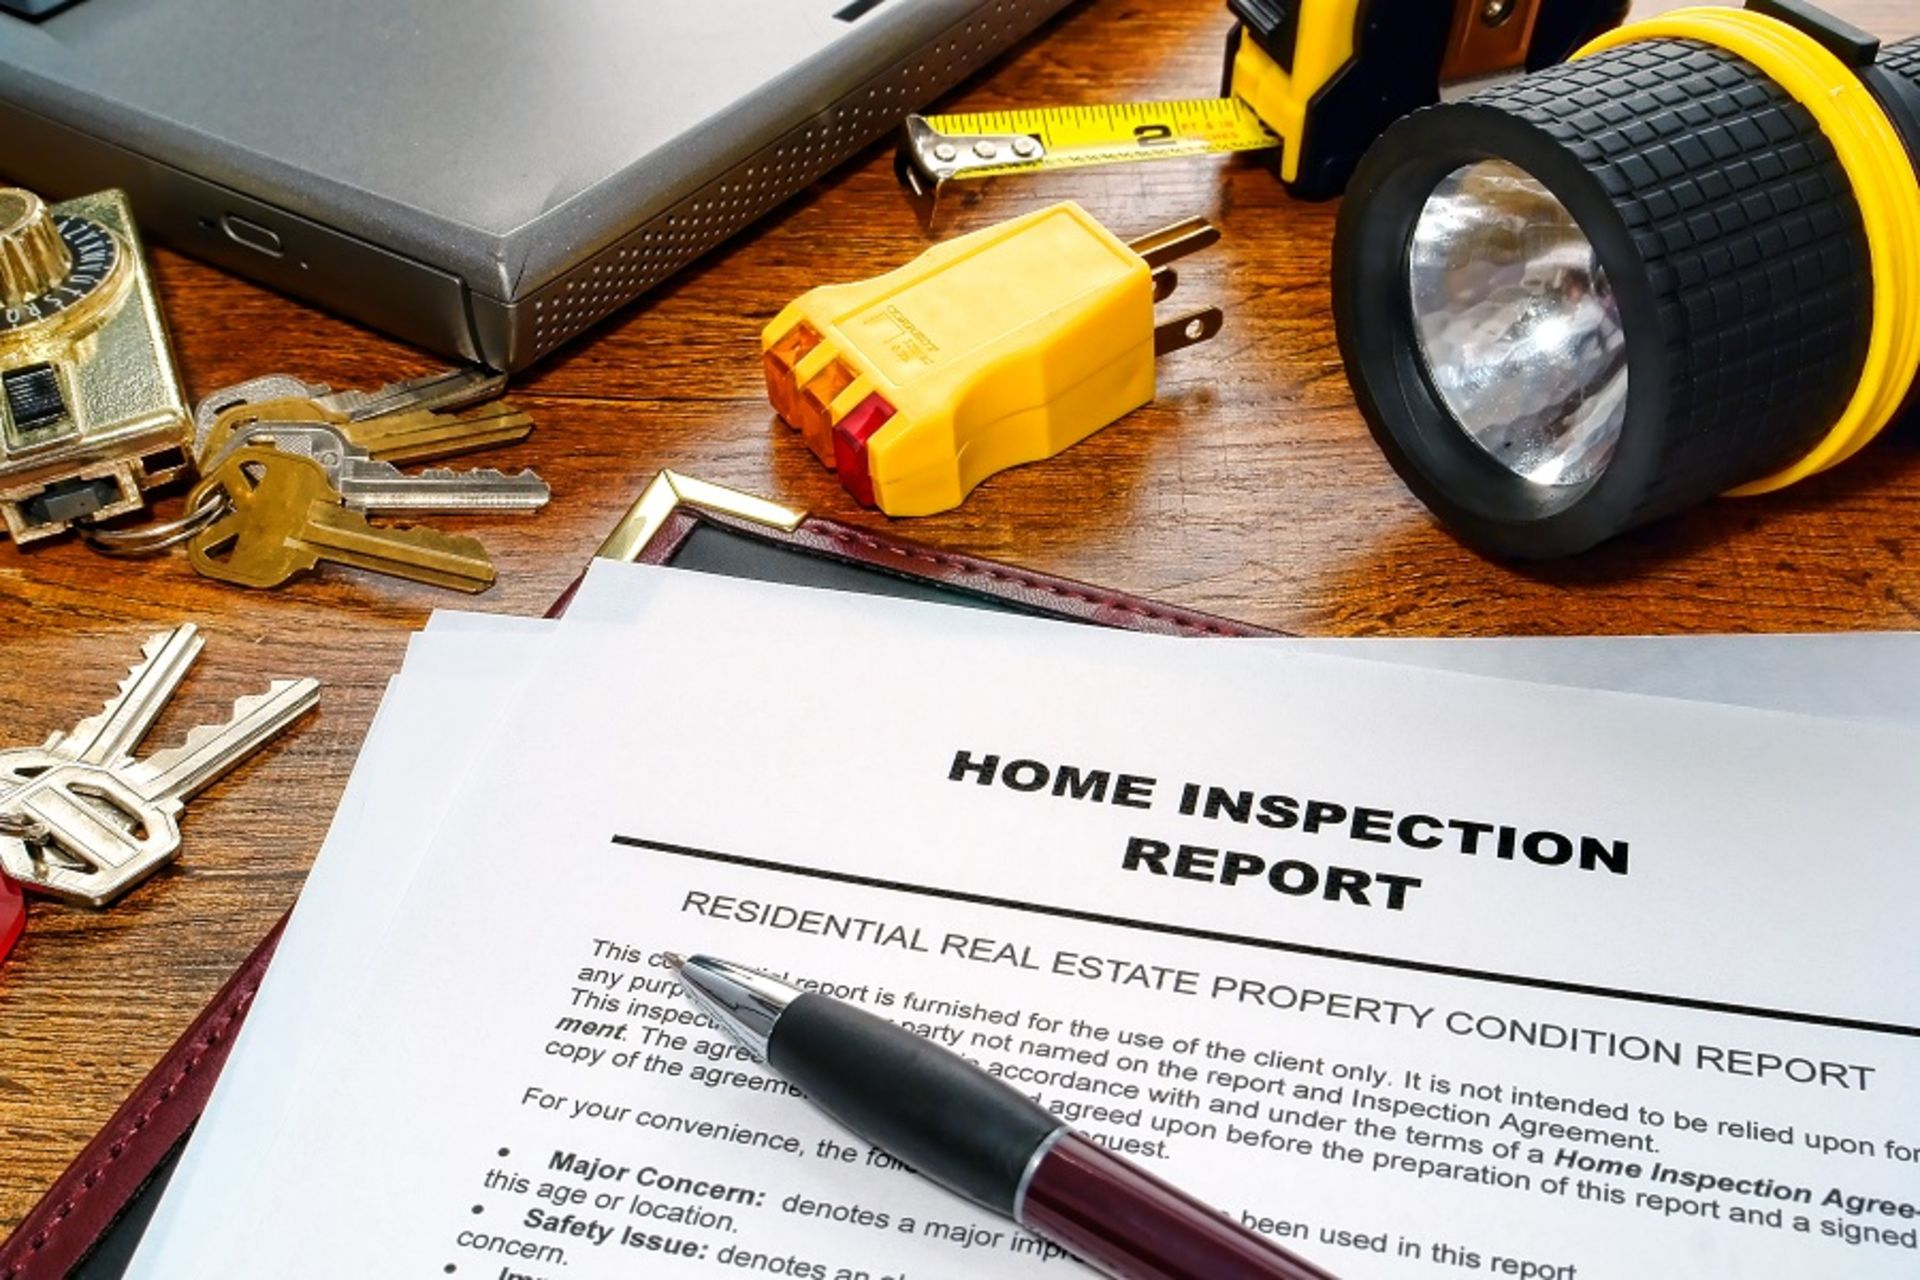 Common home inspection myths and misconceptions